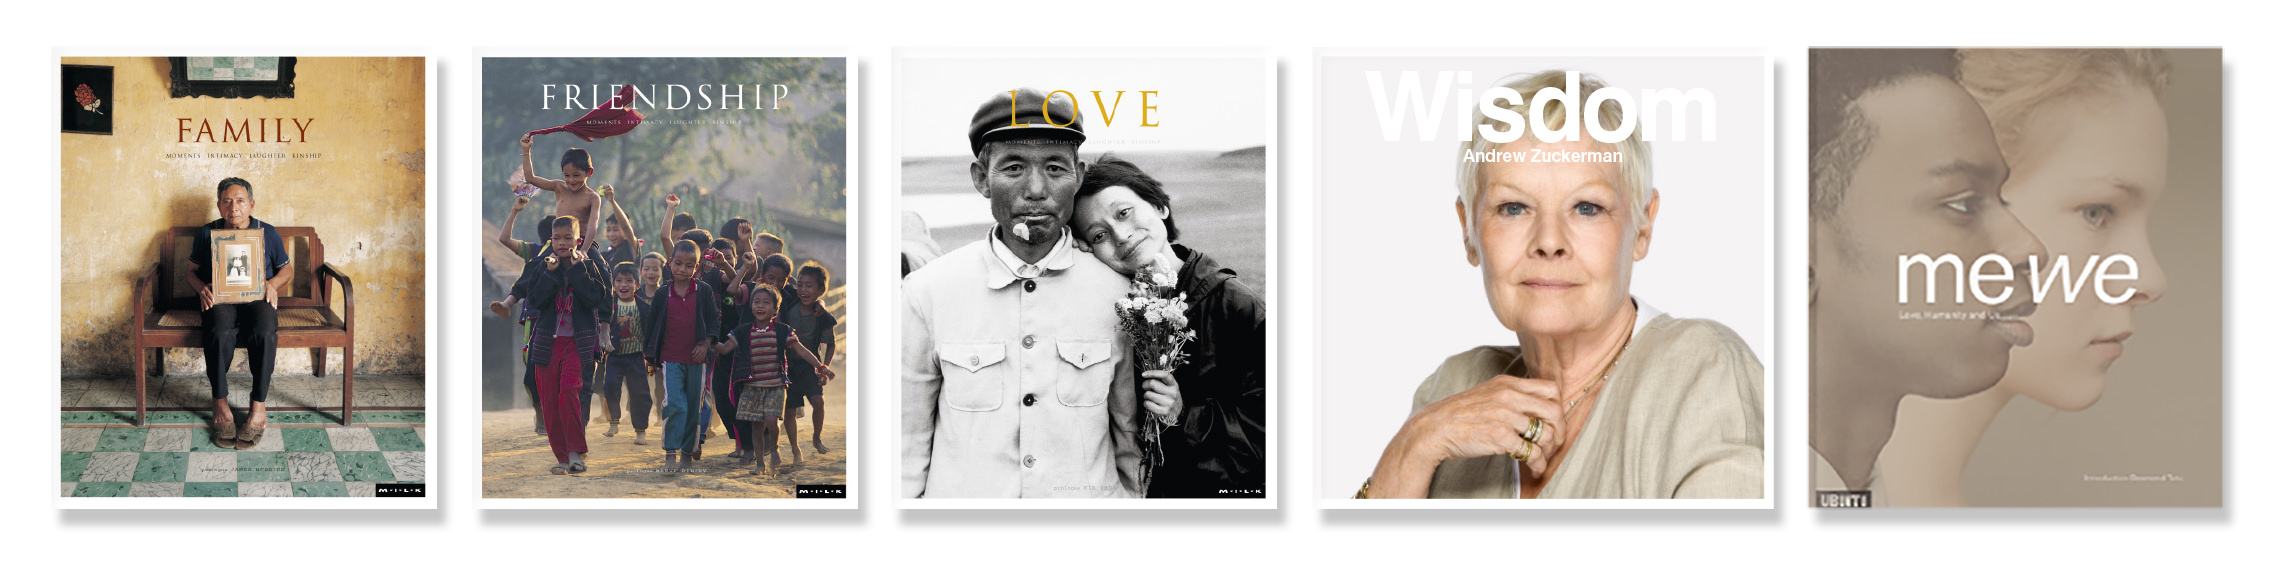 Row of FAMILY, FRIENDSHIP, LOVE, Mandela and Diana The Portrait books.